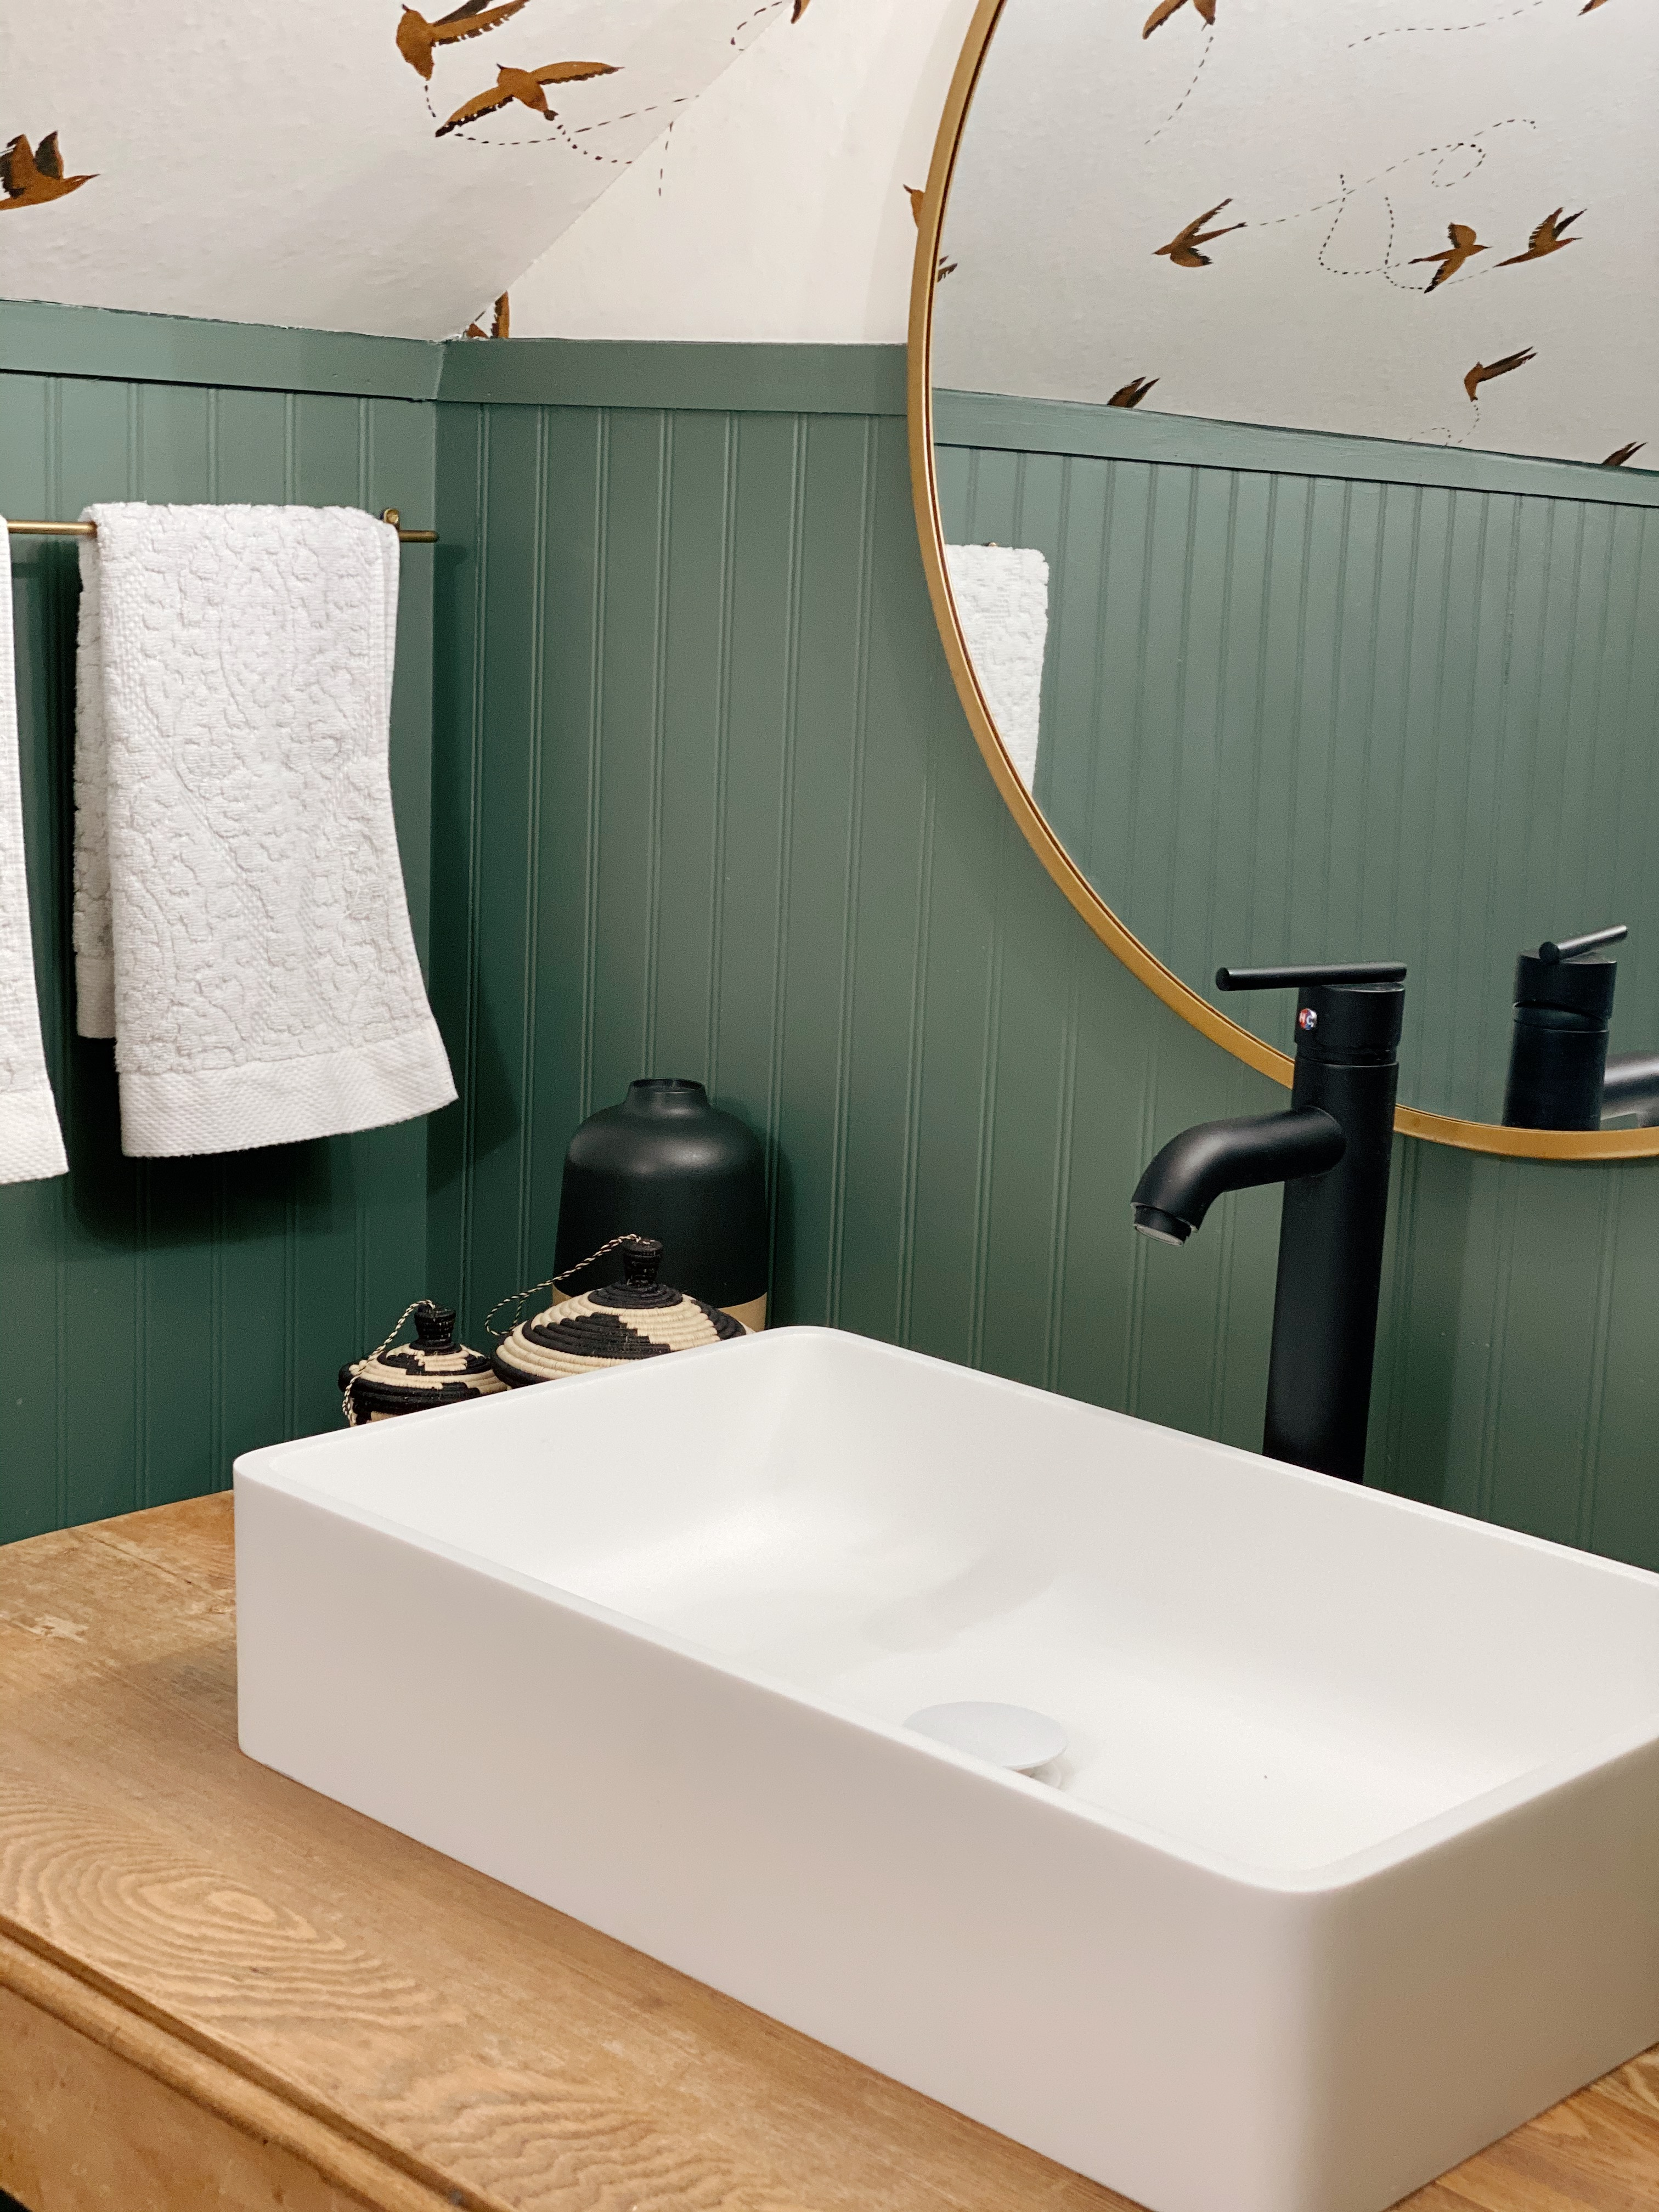 Five things to think about when you are considering creating a vessel sink stand in a bathroom. Check out how we took an old table and transformed it into a bathroom vanity!